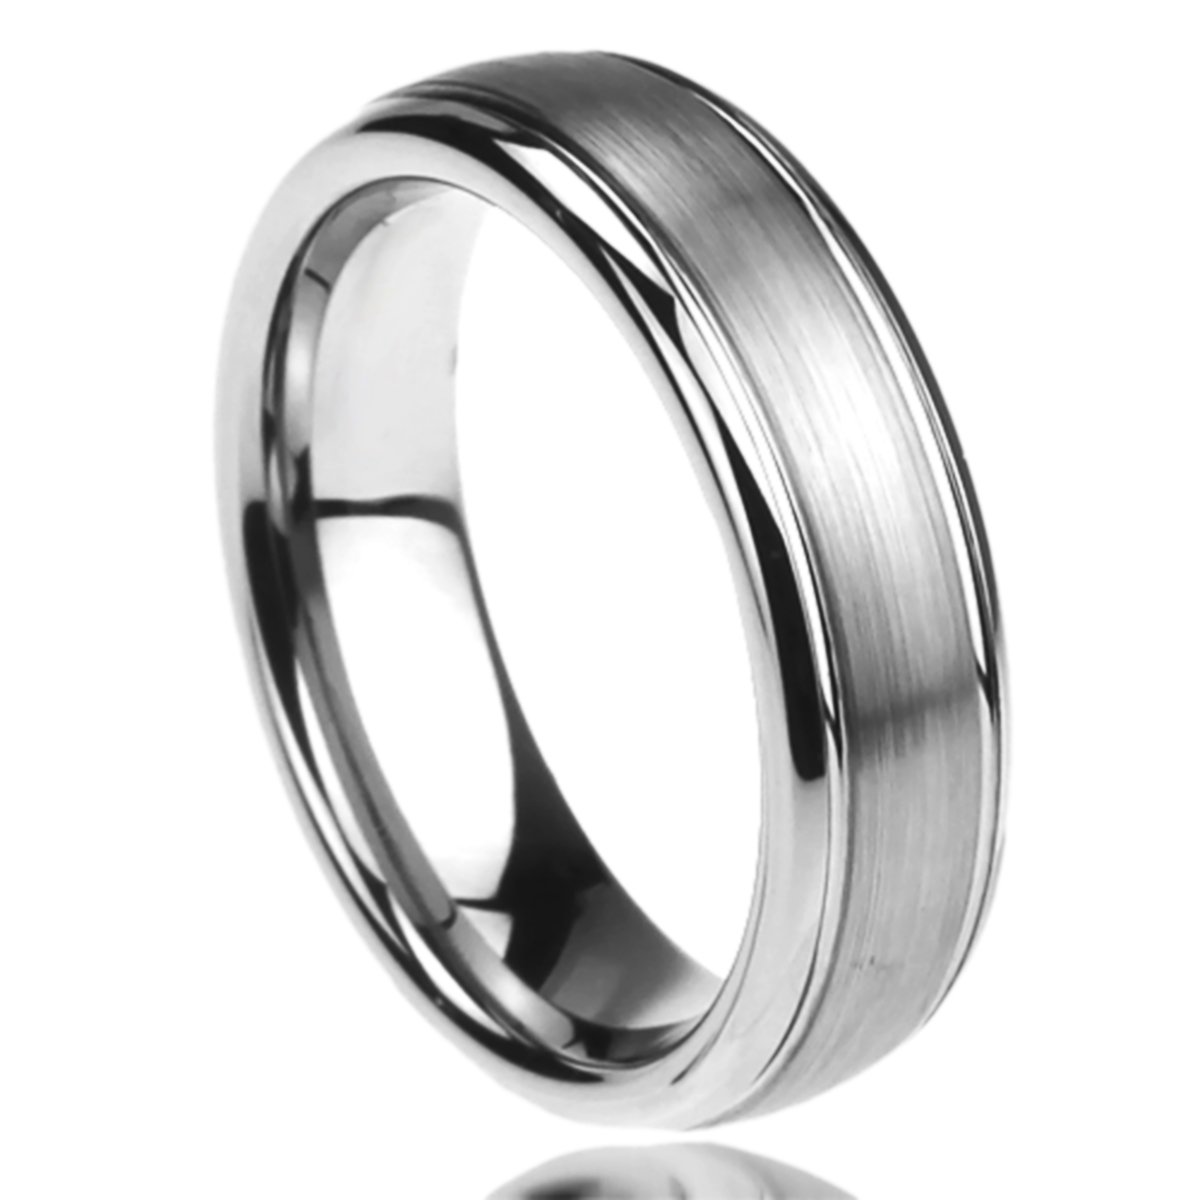 6MM Stainless Steel Wedding Band Ring Brushed Center Domed Classy (6 to 14) - Size: 8